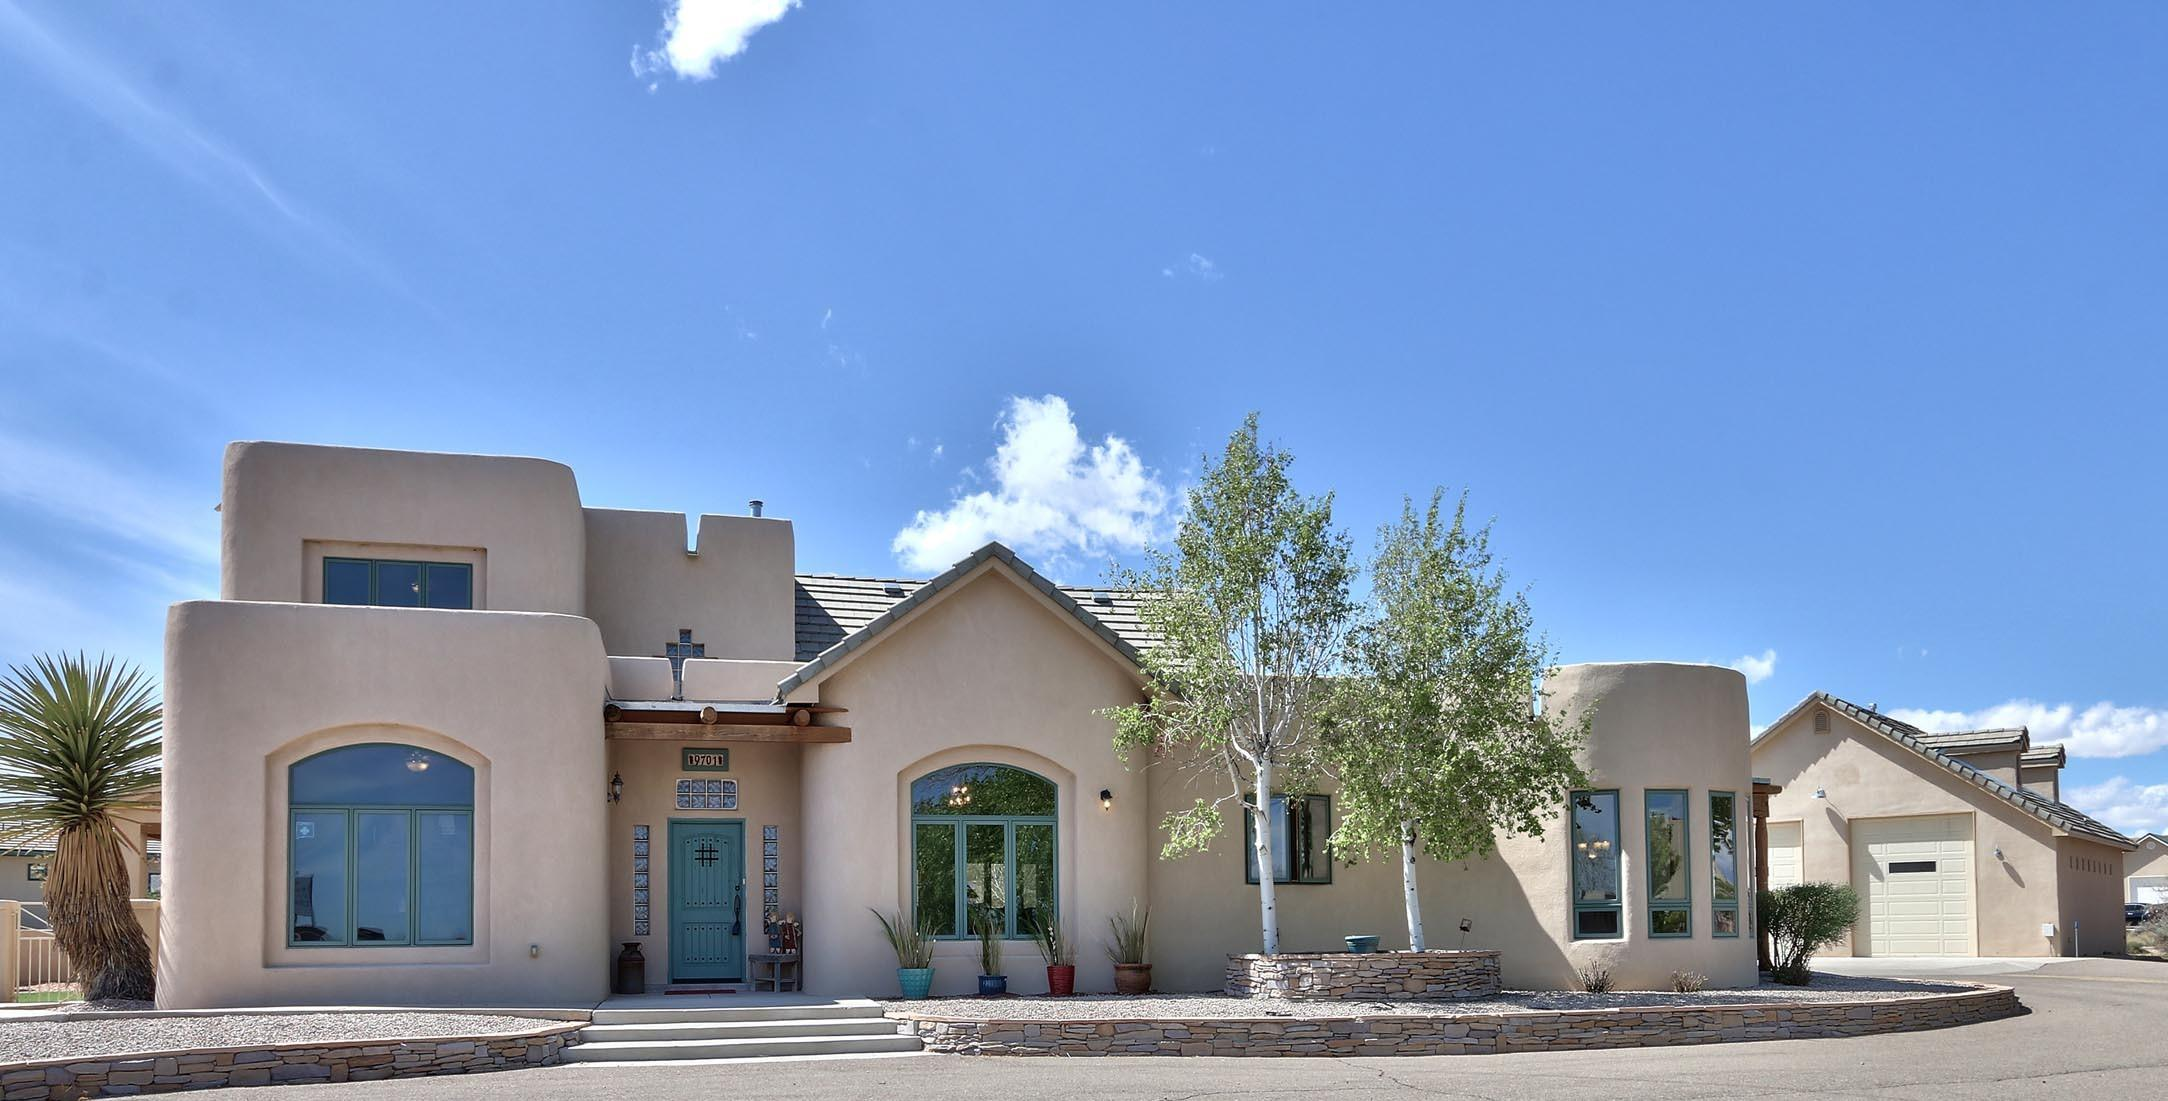 9701 CONEFLOWER Drive NW, Albuquerque, NM 87114 - Albuquerque, NM real estate listing